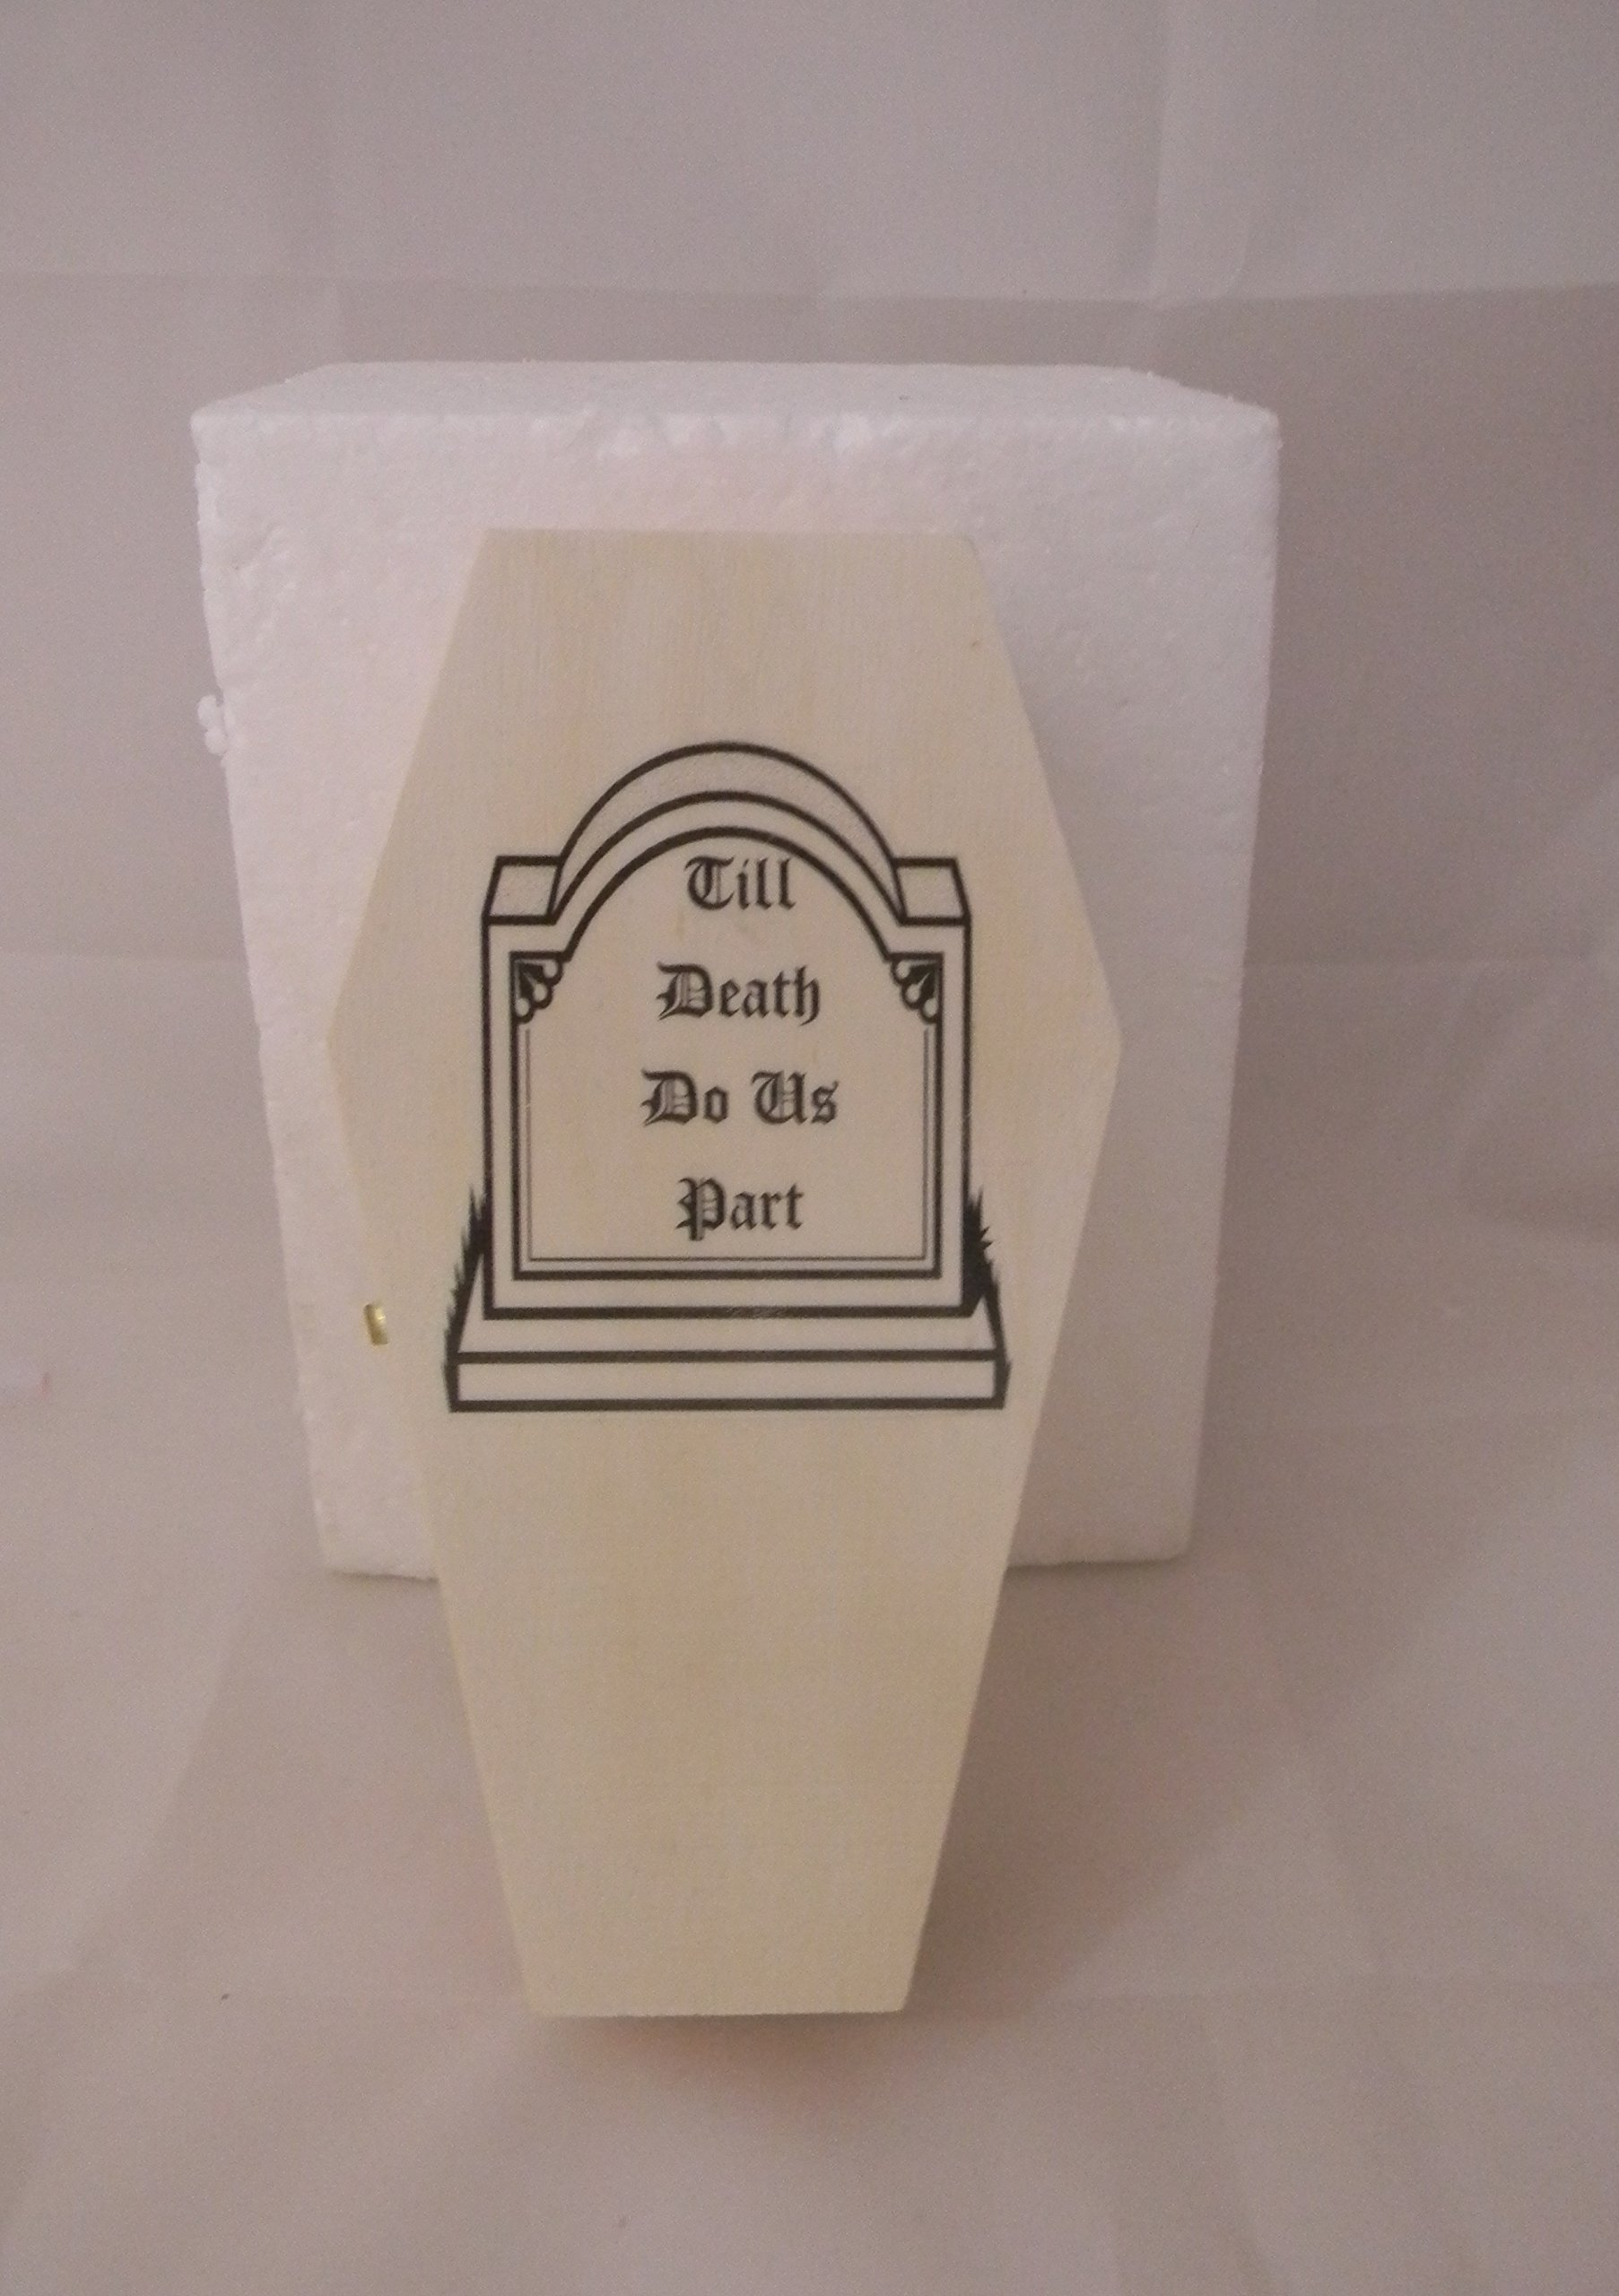 Wedding Party ceremony Gothic Wicca Coffin Tombstone ring bearer pillow Box by Custom Design Wedding Supplies by Suzanne (Image #2)